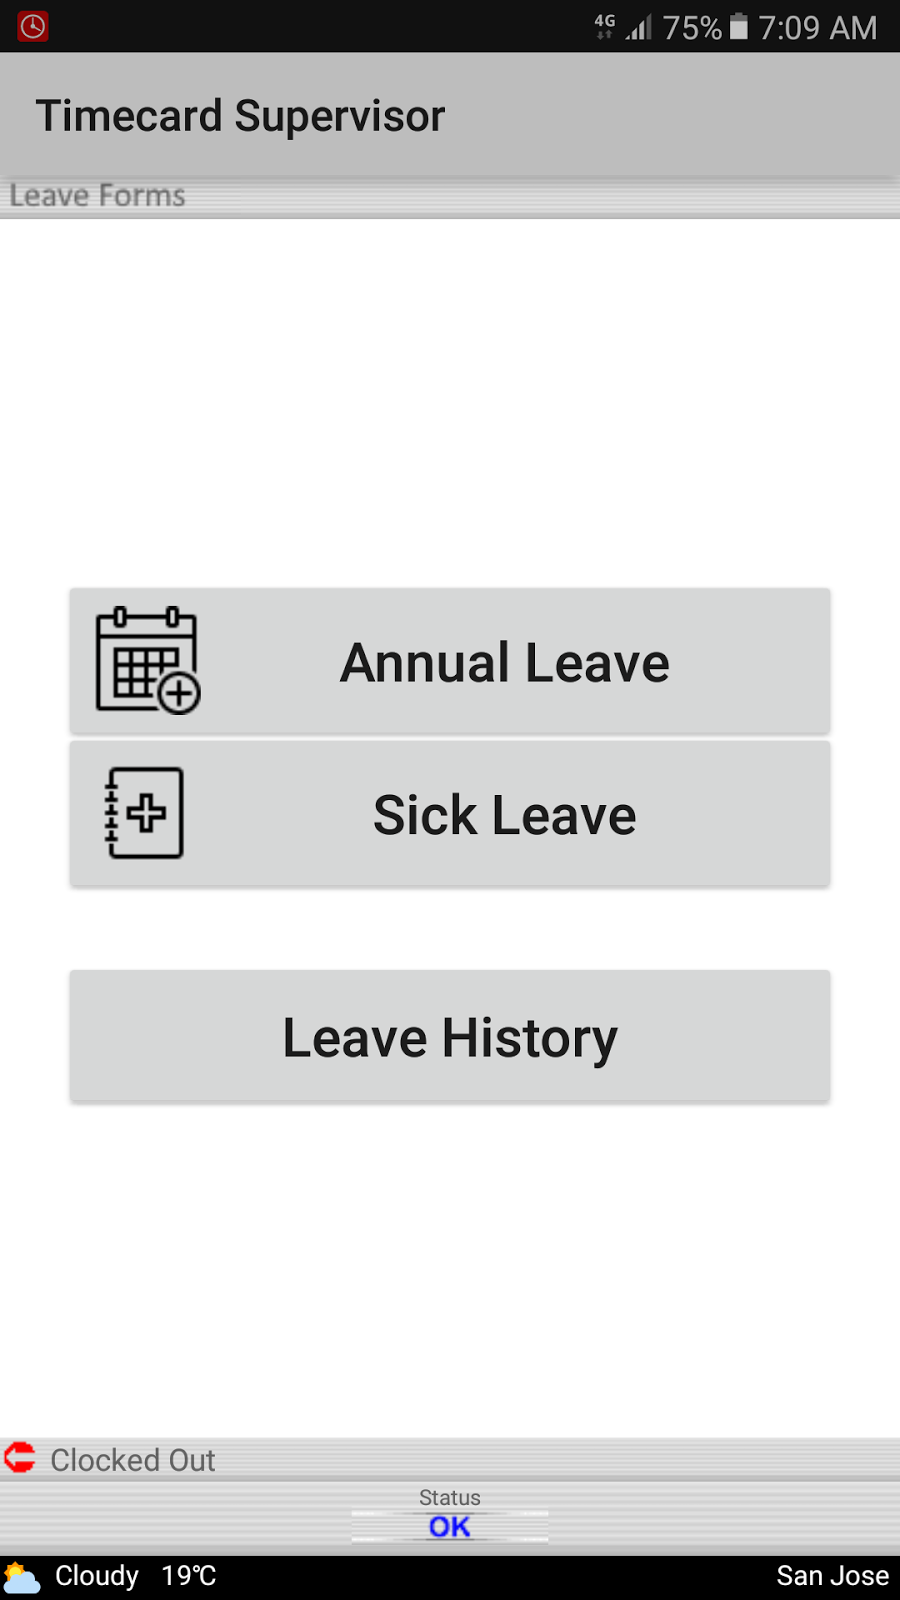 annual leave form - Heart.impulsar.co